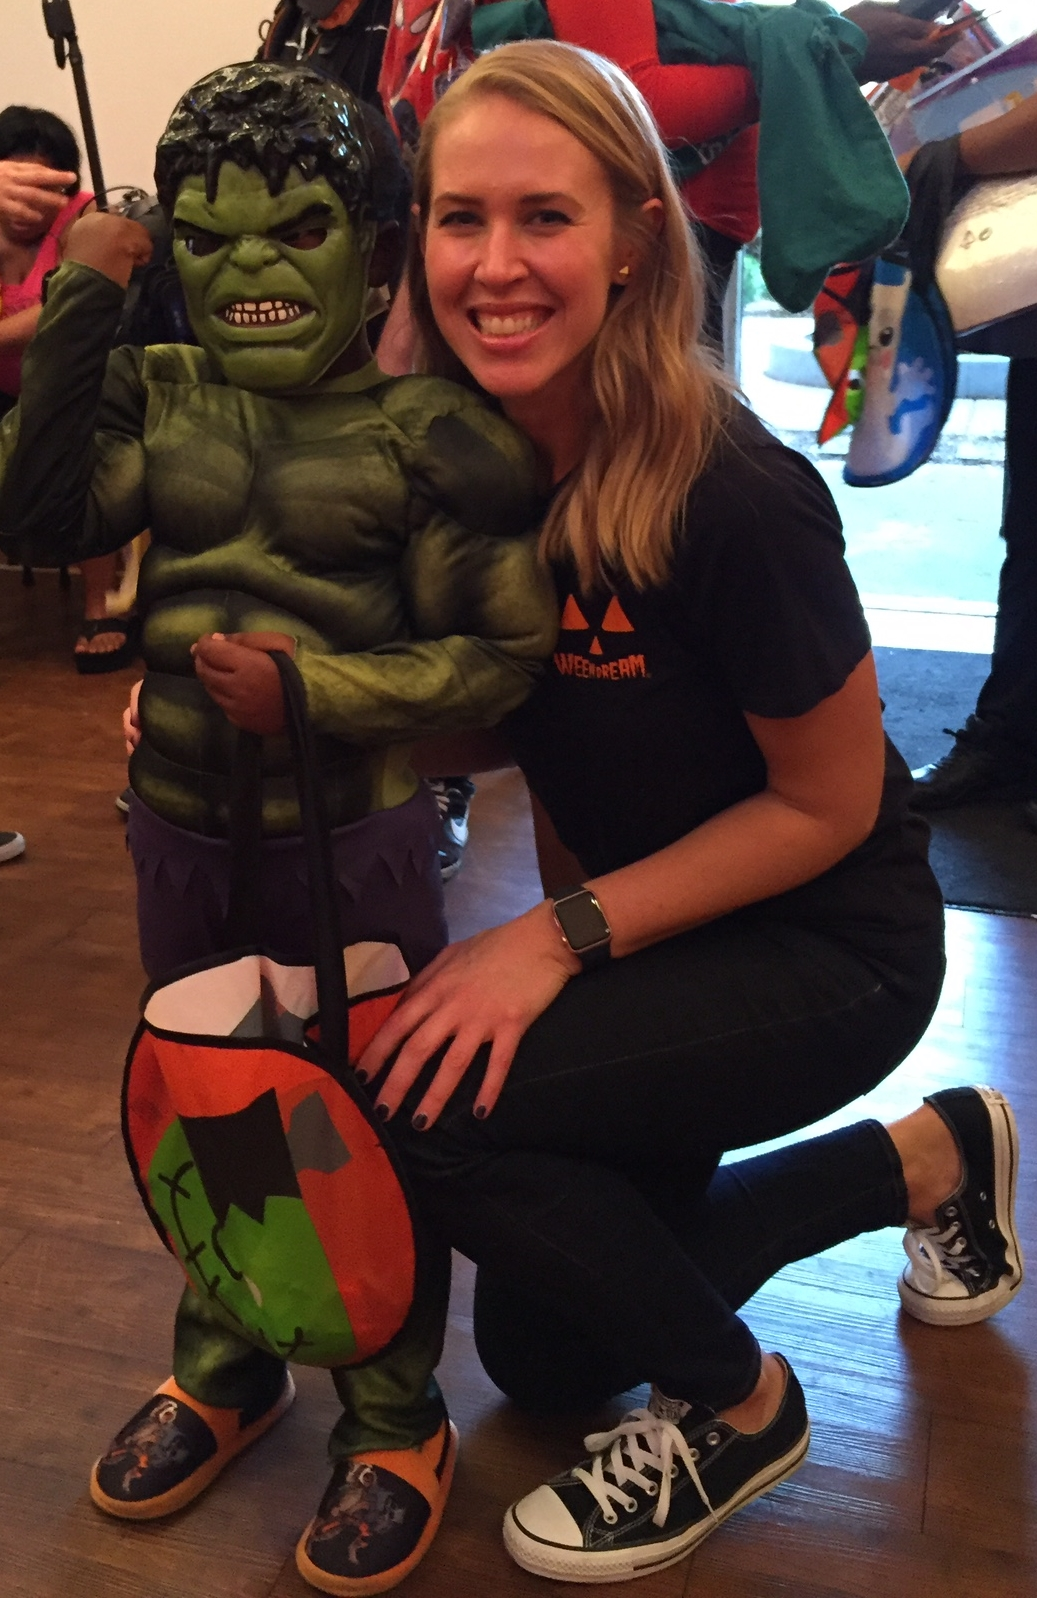 The Hulk and 'WEEN DREAM Founder Kelsey at Covenant House New Orleans on October 21, 2015